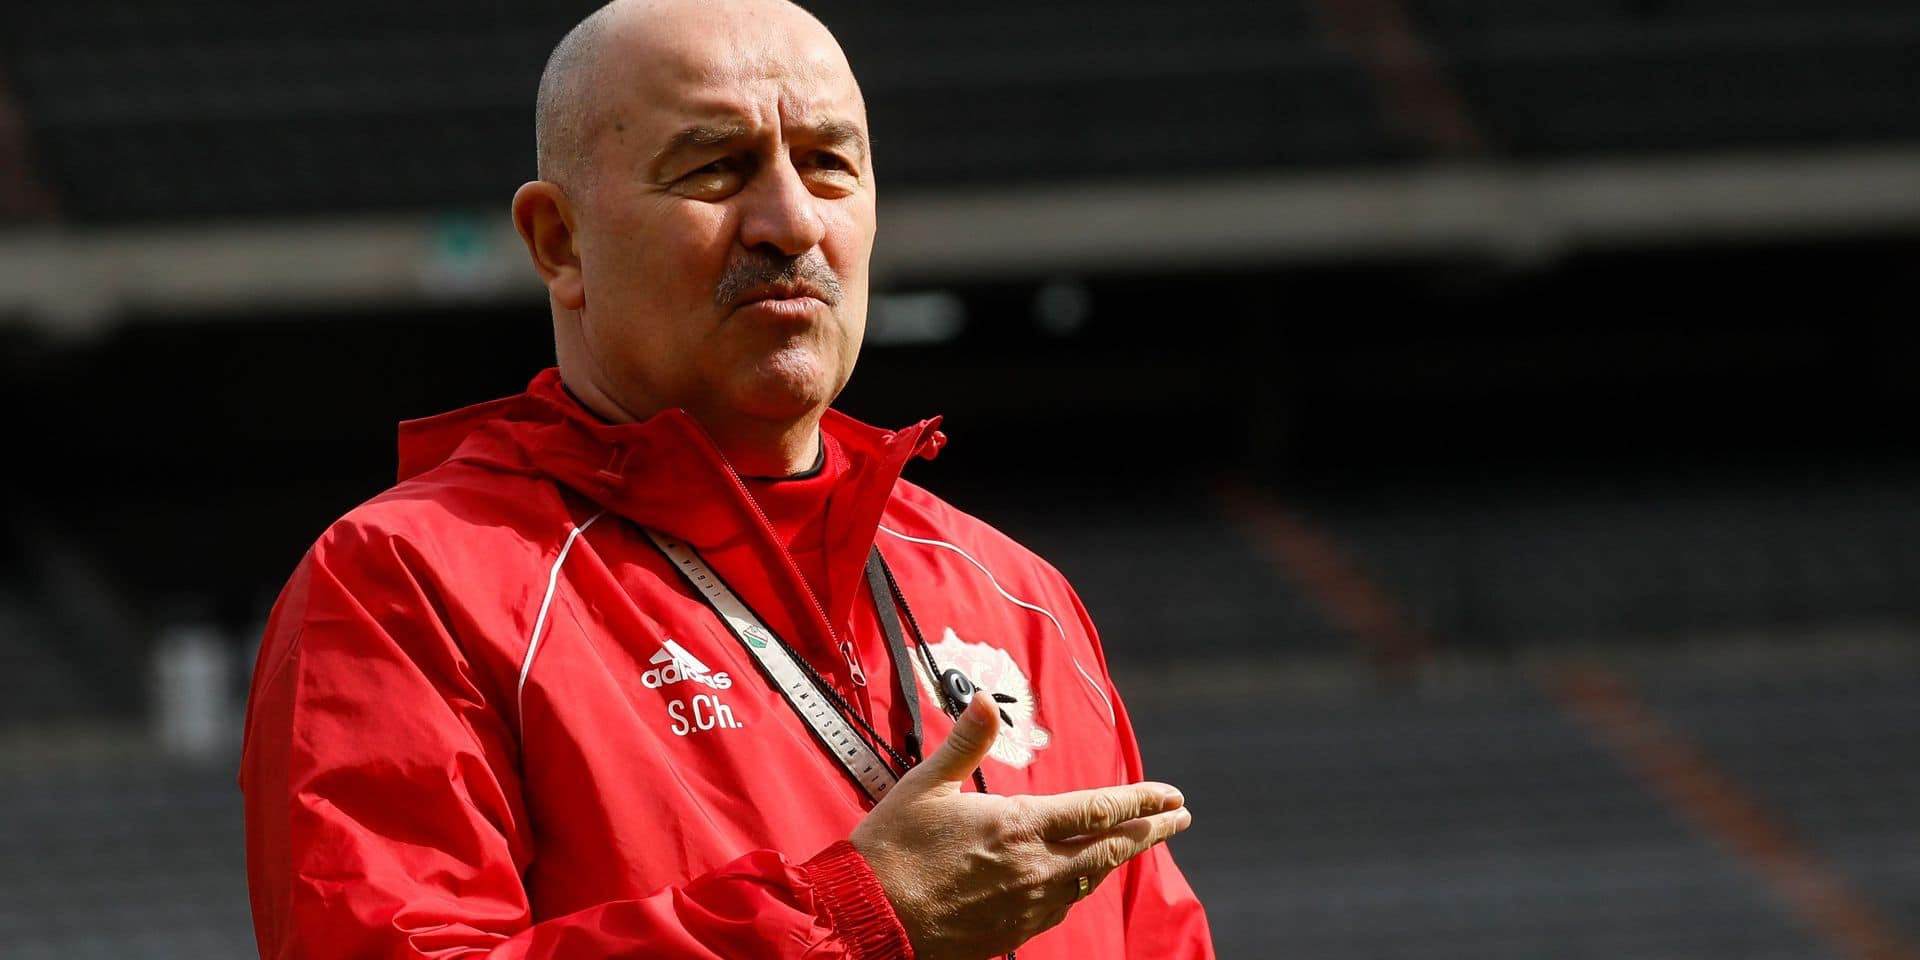 Russia Head coach Stanislav Cherchesov pictured during a training session of Russian national soccer team, Wednesday 20 March 2019 in Brussels. The team is playing tomorrow a European Cup 2020 qualification games against Belgium. BELGA PHOTO THIERRY ROGE